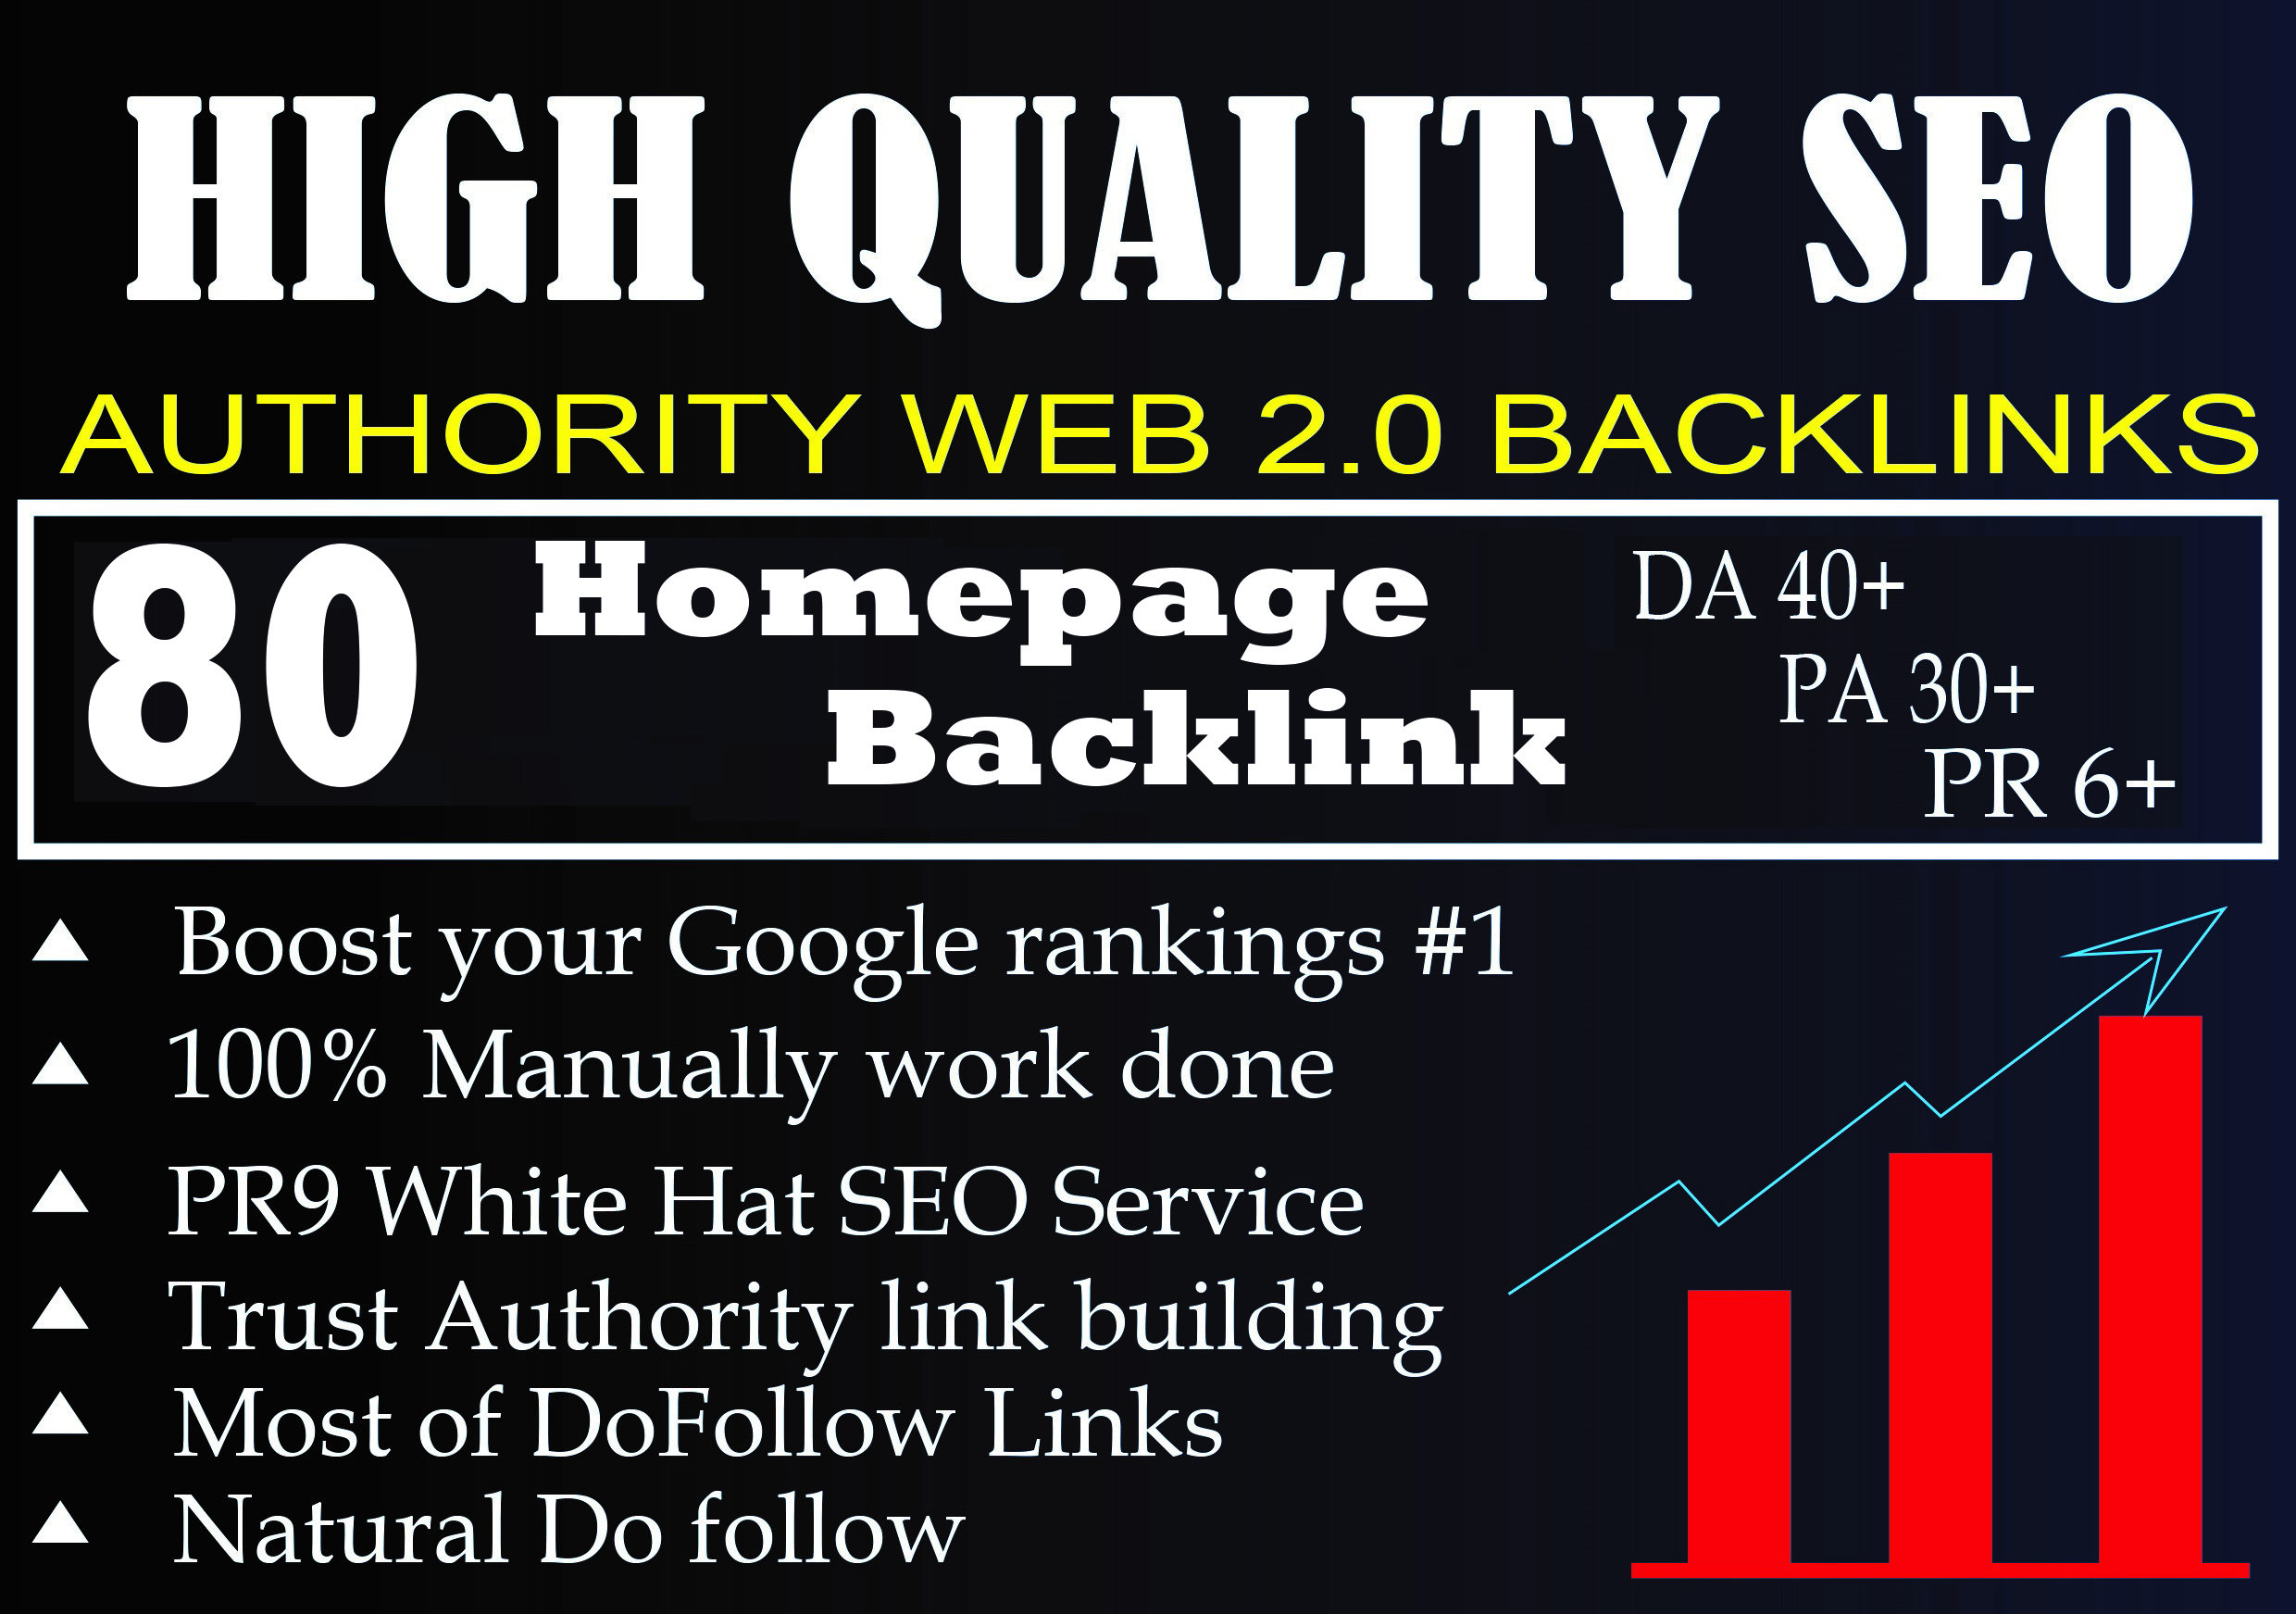 DA 40+ PA 30+ PR 6+ Web2.0 80 homepage Backlink in 100 dofollow in unique site